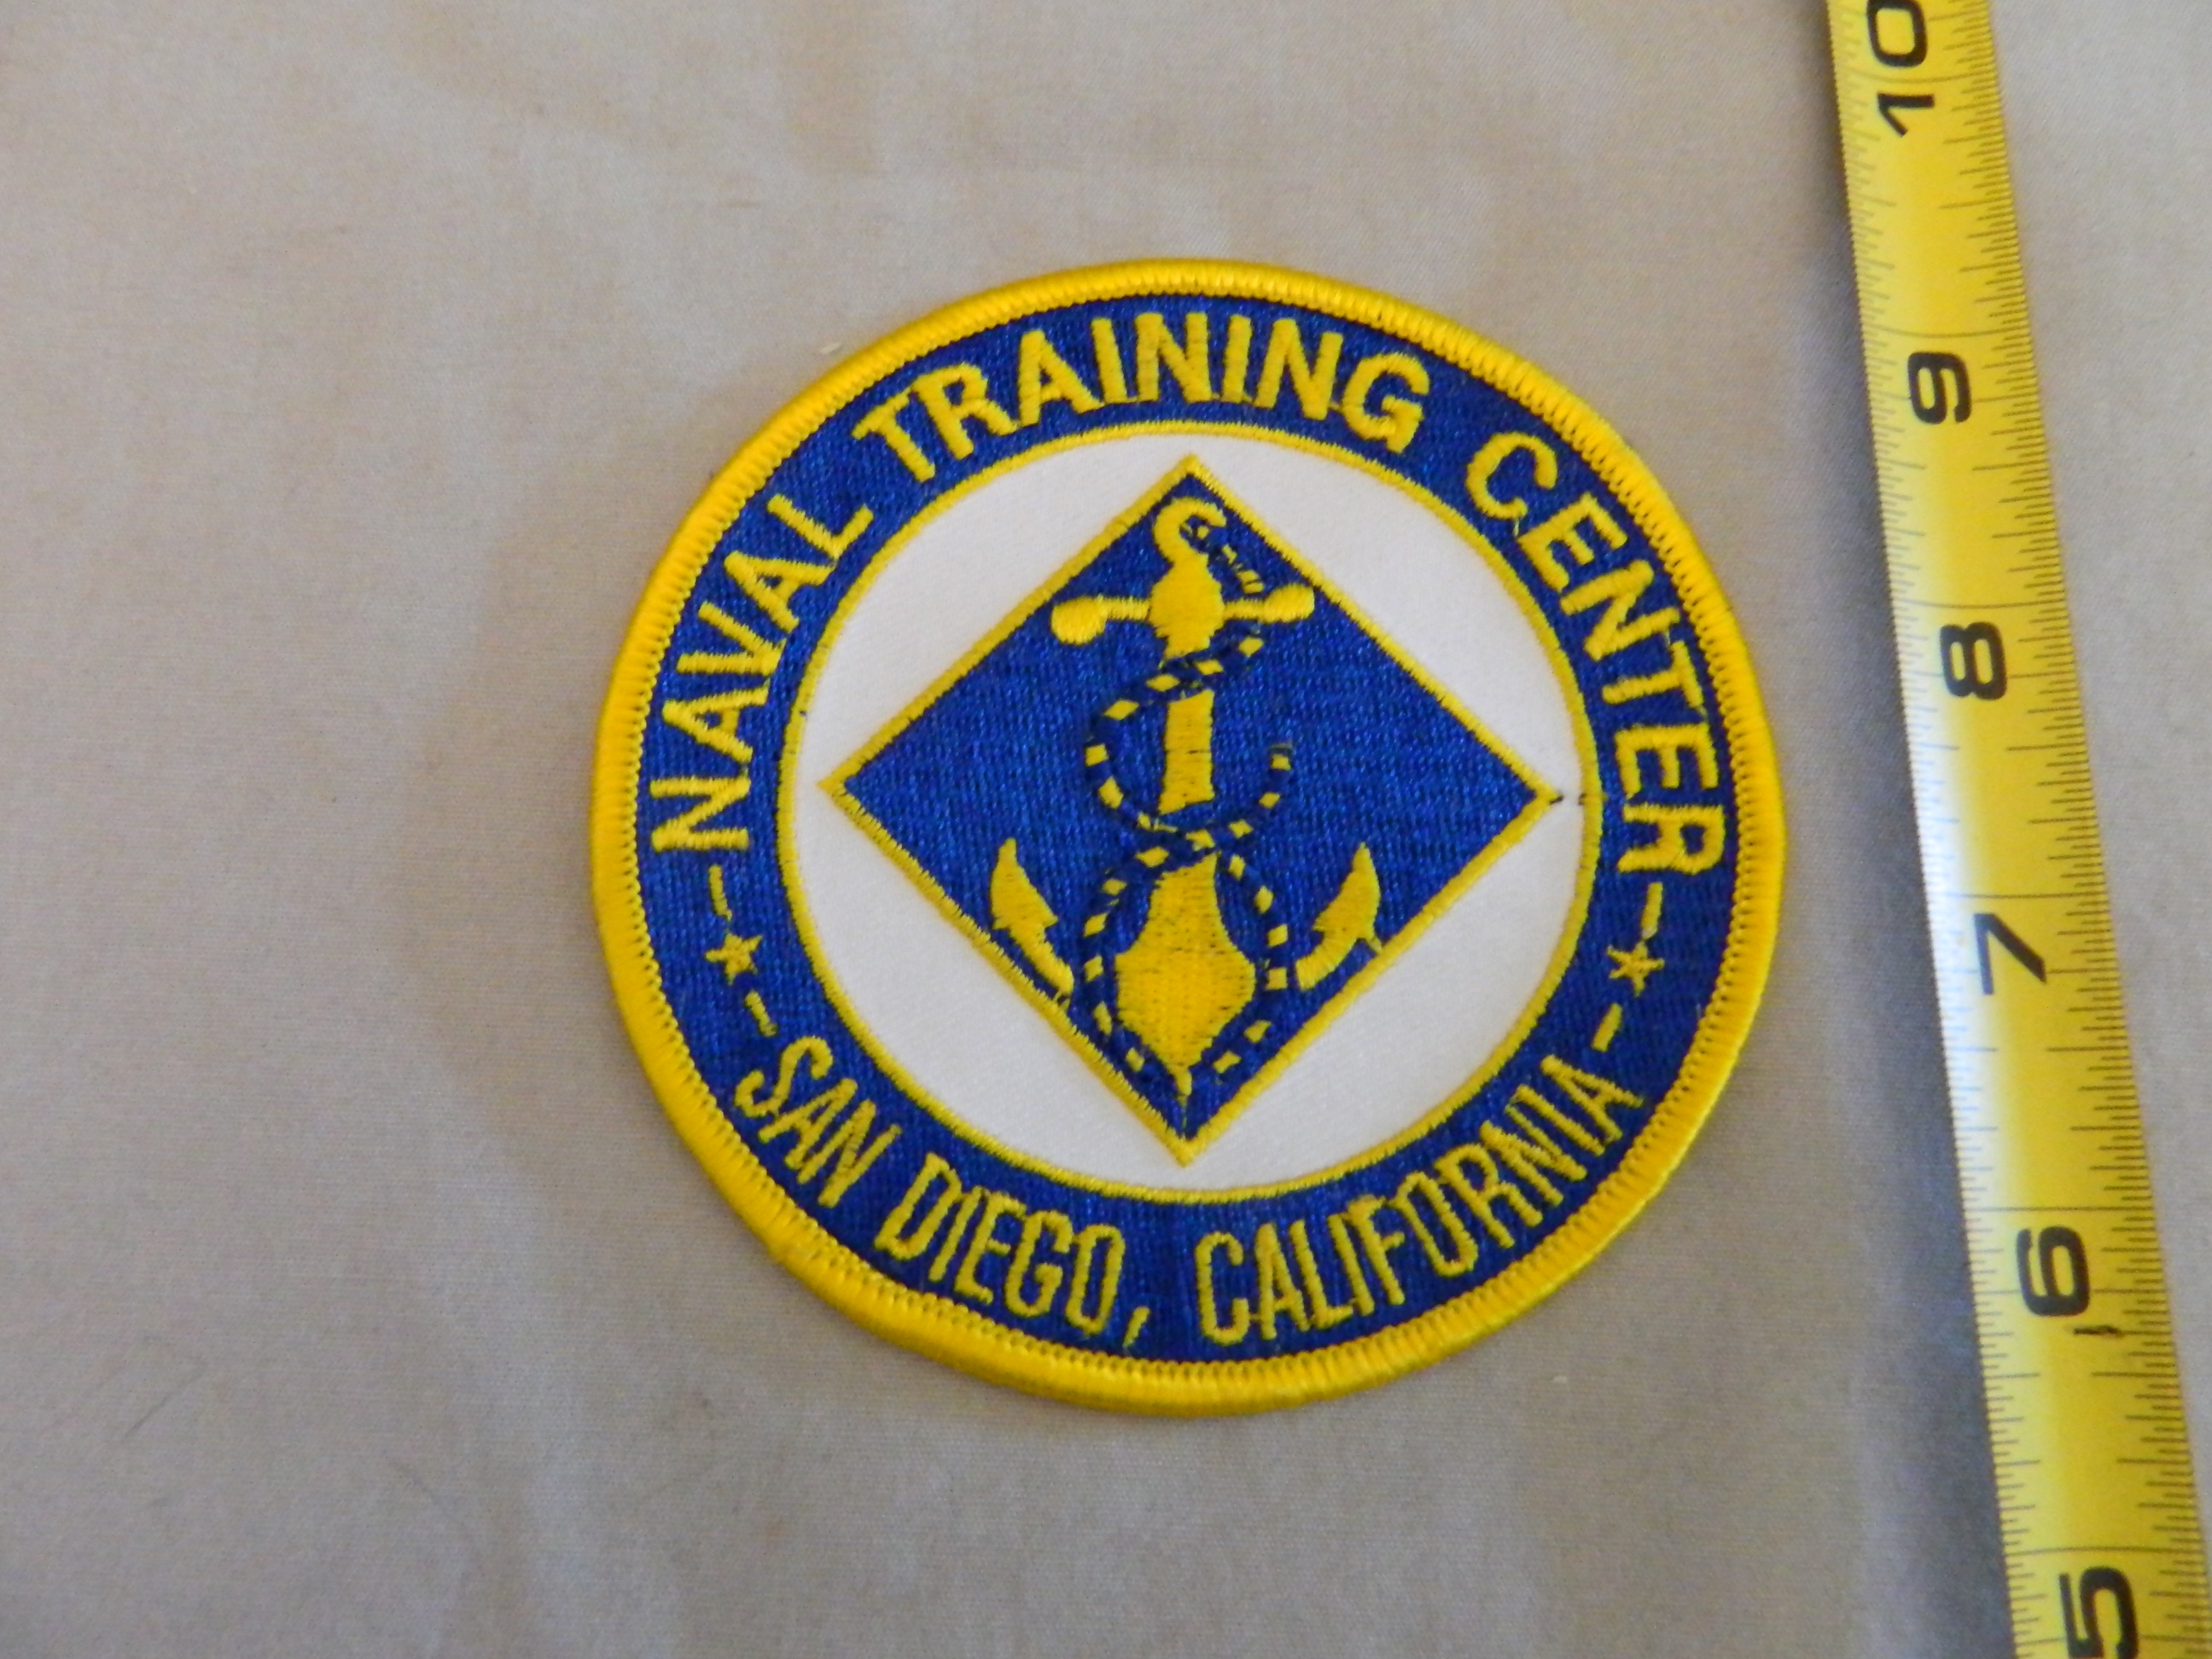 USN: NAVAL TRAINING CENTER-San Diego, Cal.- Color Patch